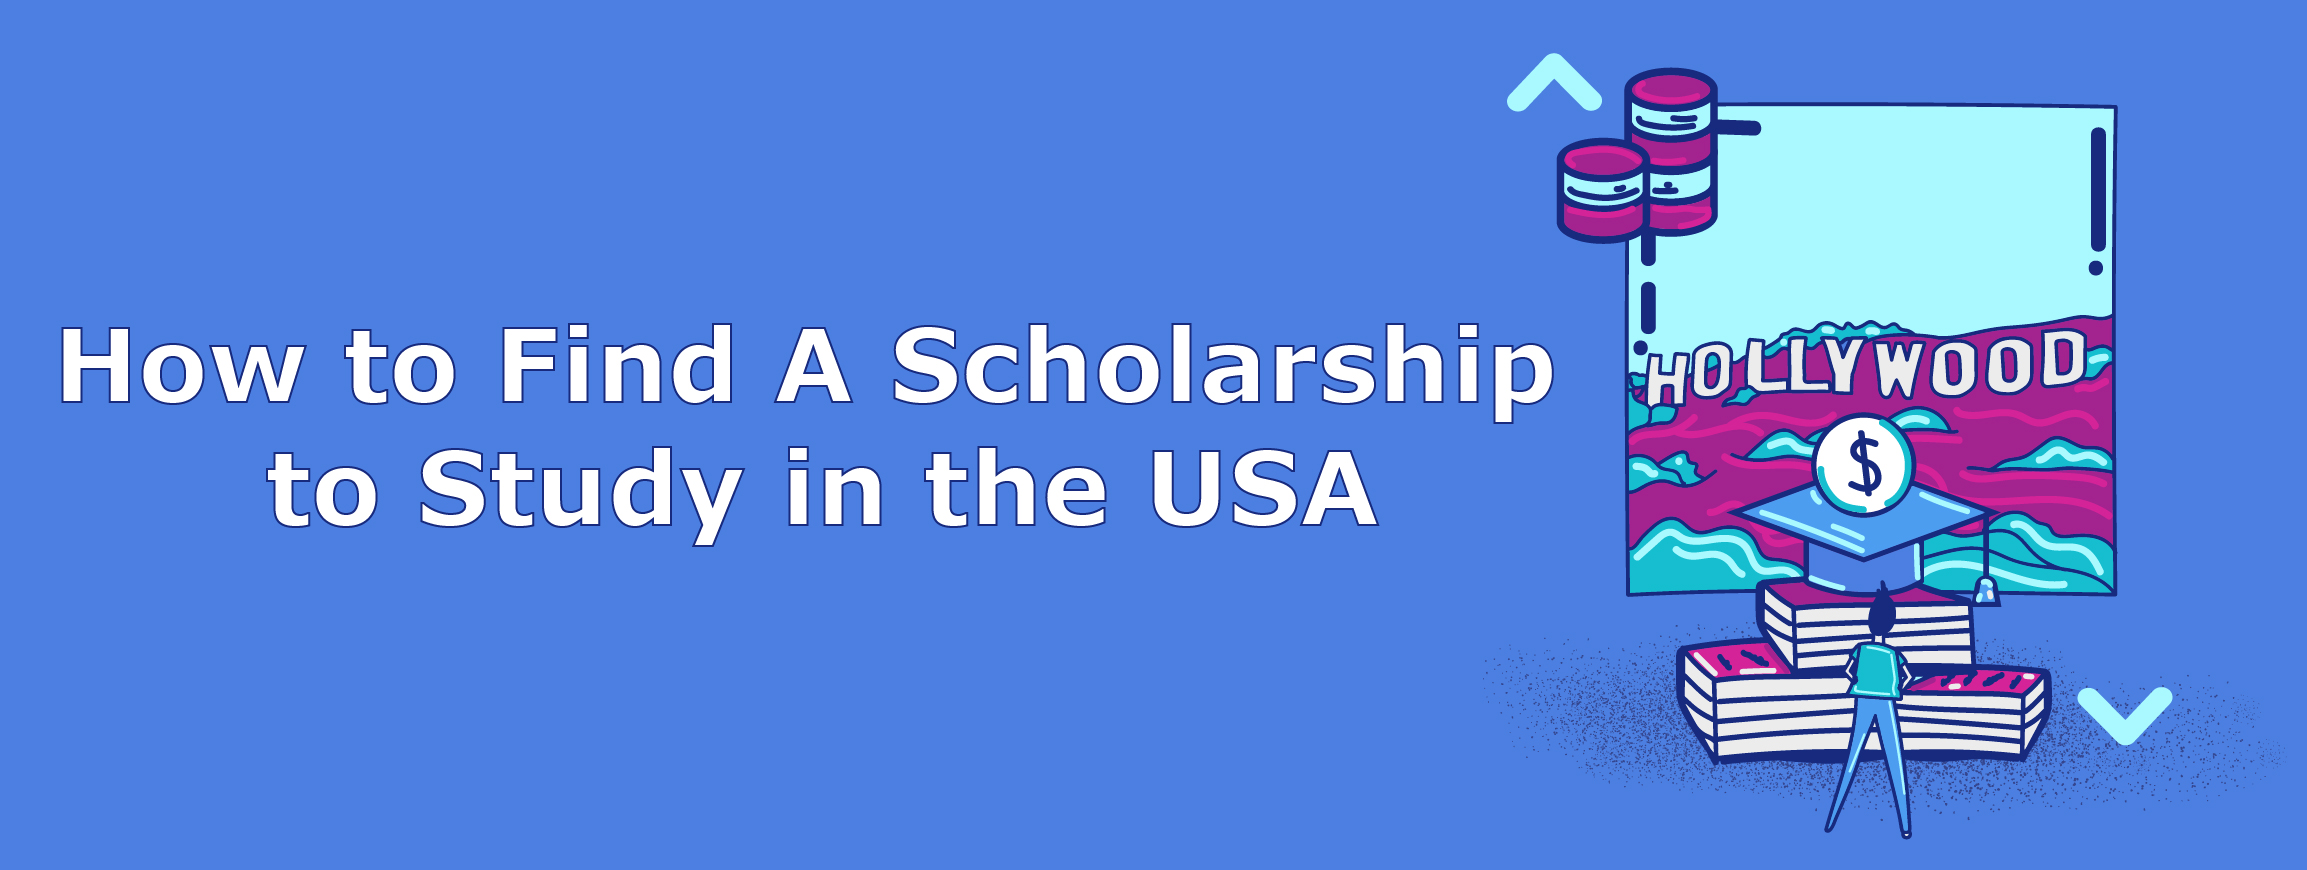 How to Find A Scholarship to Study in the USA